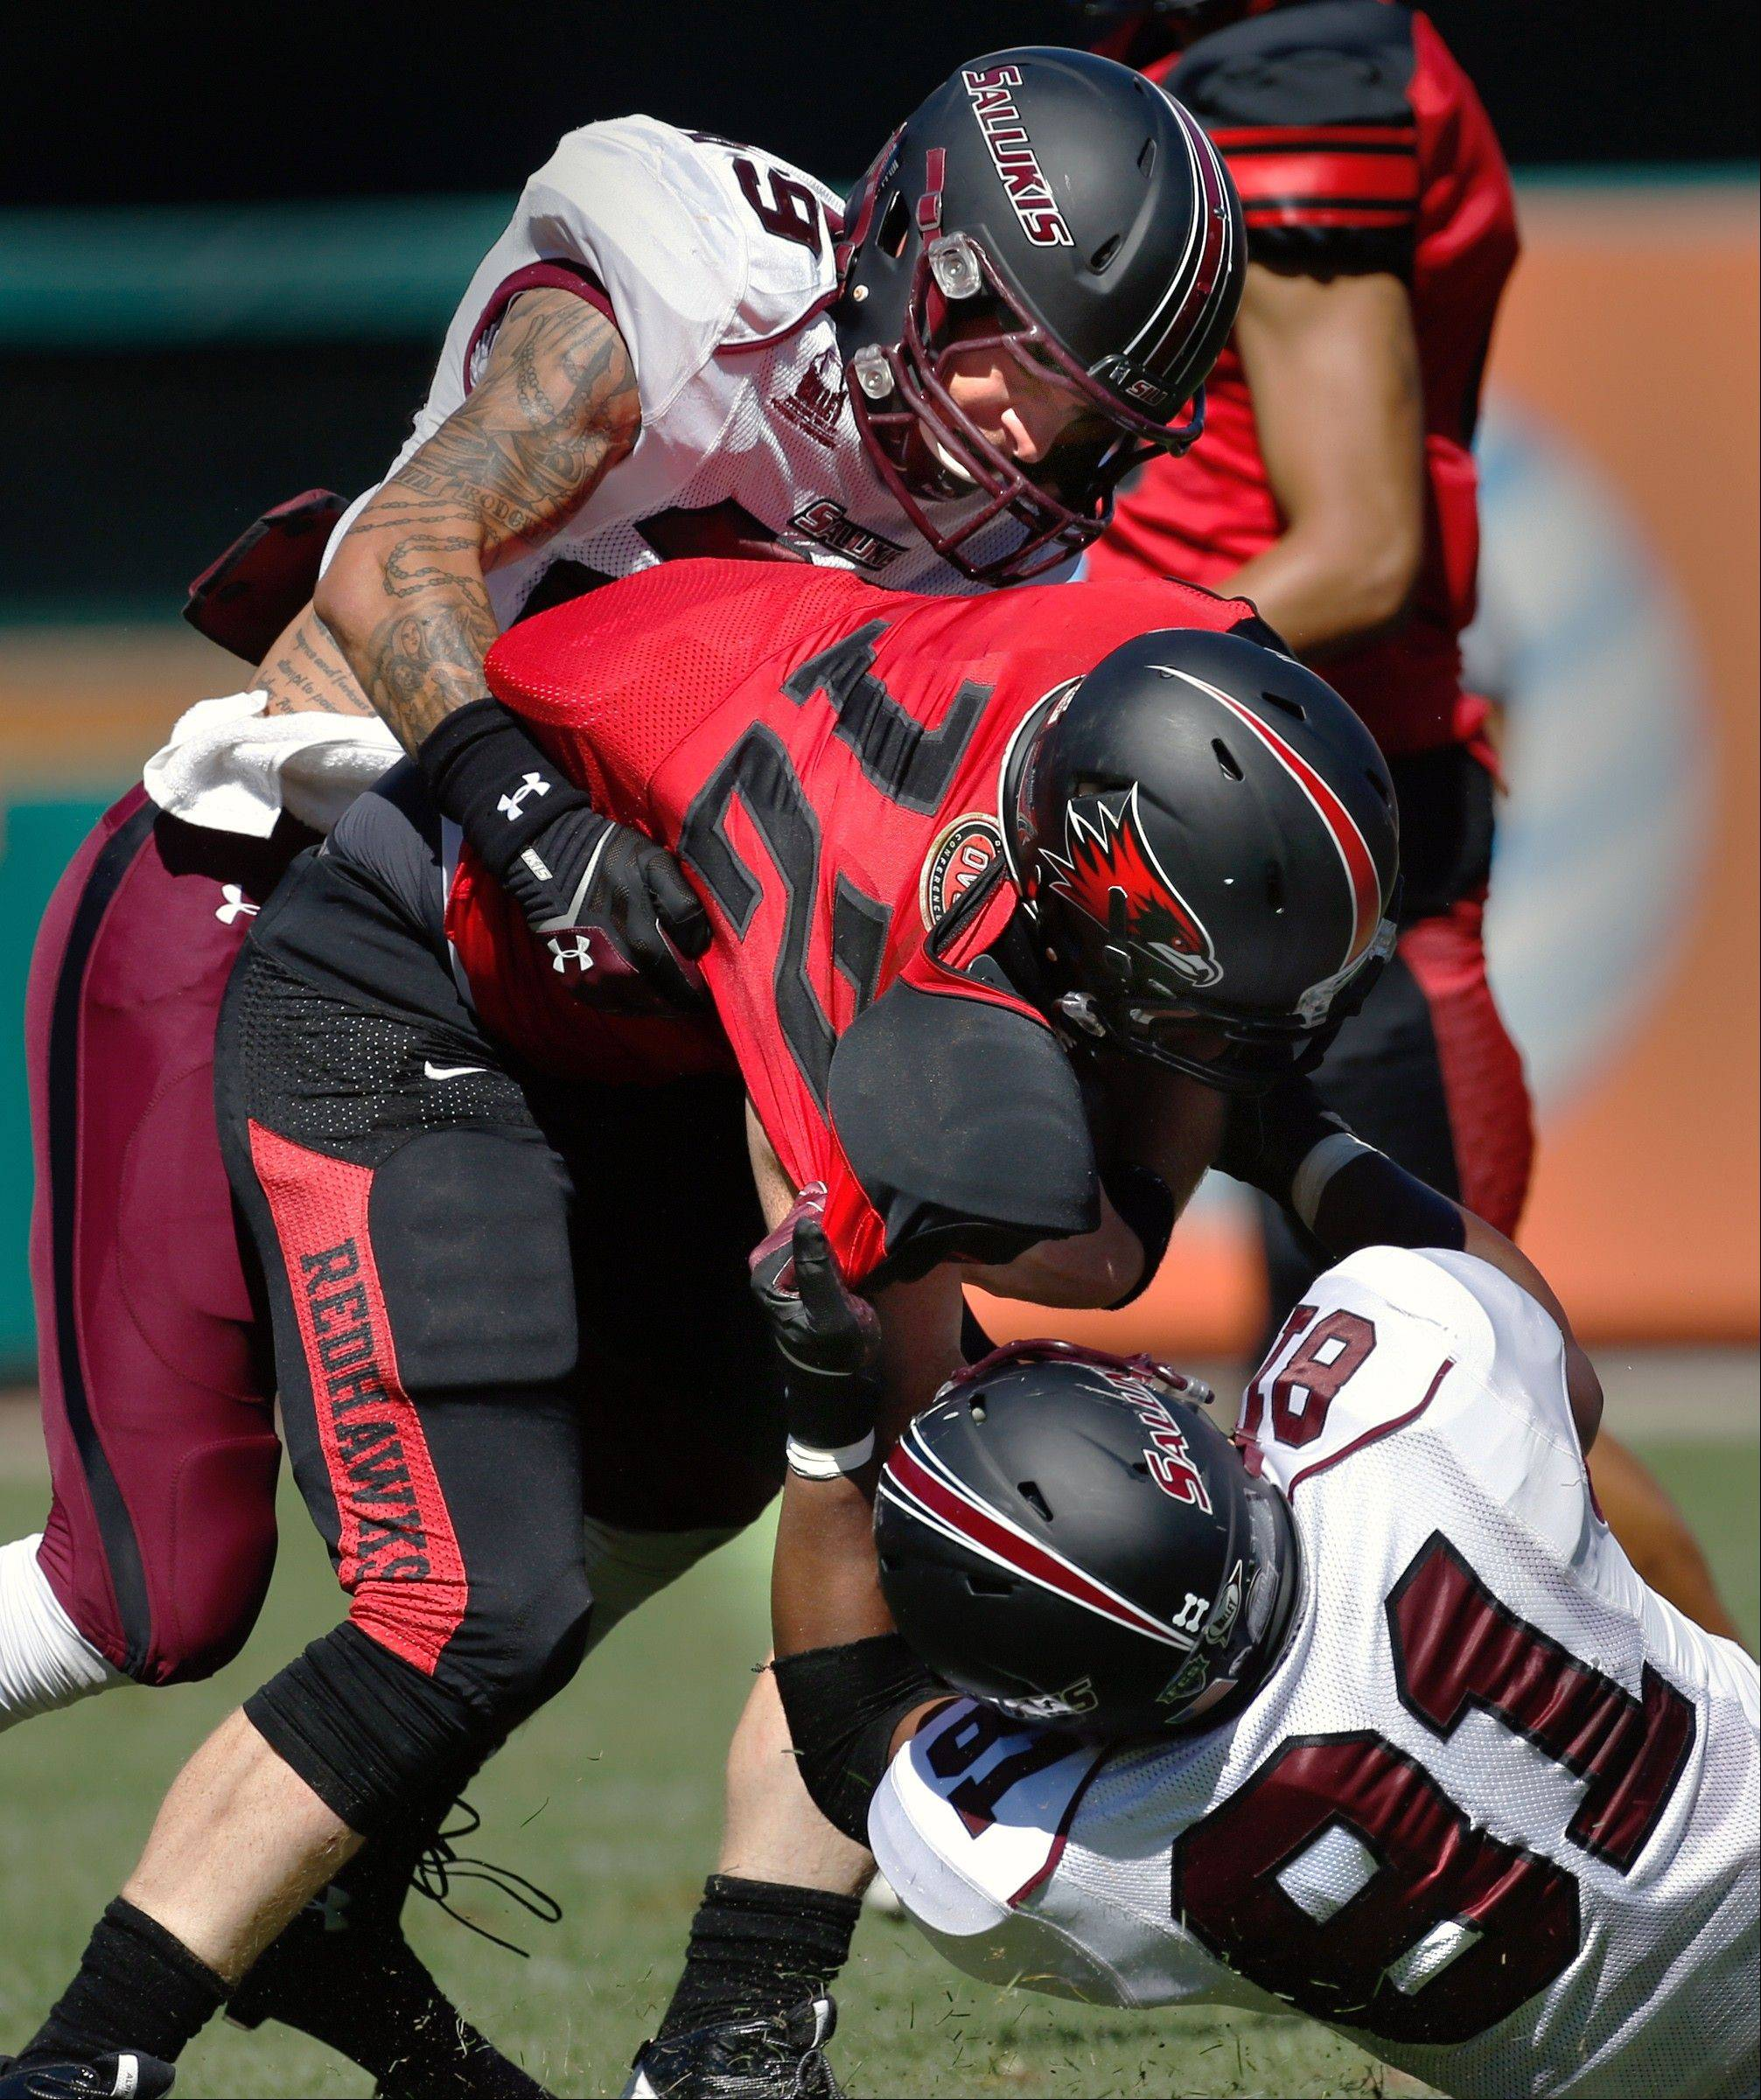 Southern Illinois defenders Boo Rodgers, top, and Leonard Garron bring down Southeast Missouri quarterback Kyle Snyder (12) during the second quarter of Saturday�s game at Busch Stadium in St. Louis. SIU won 36-19.